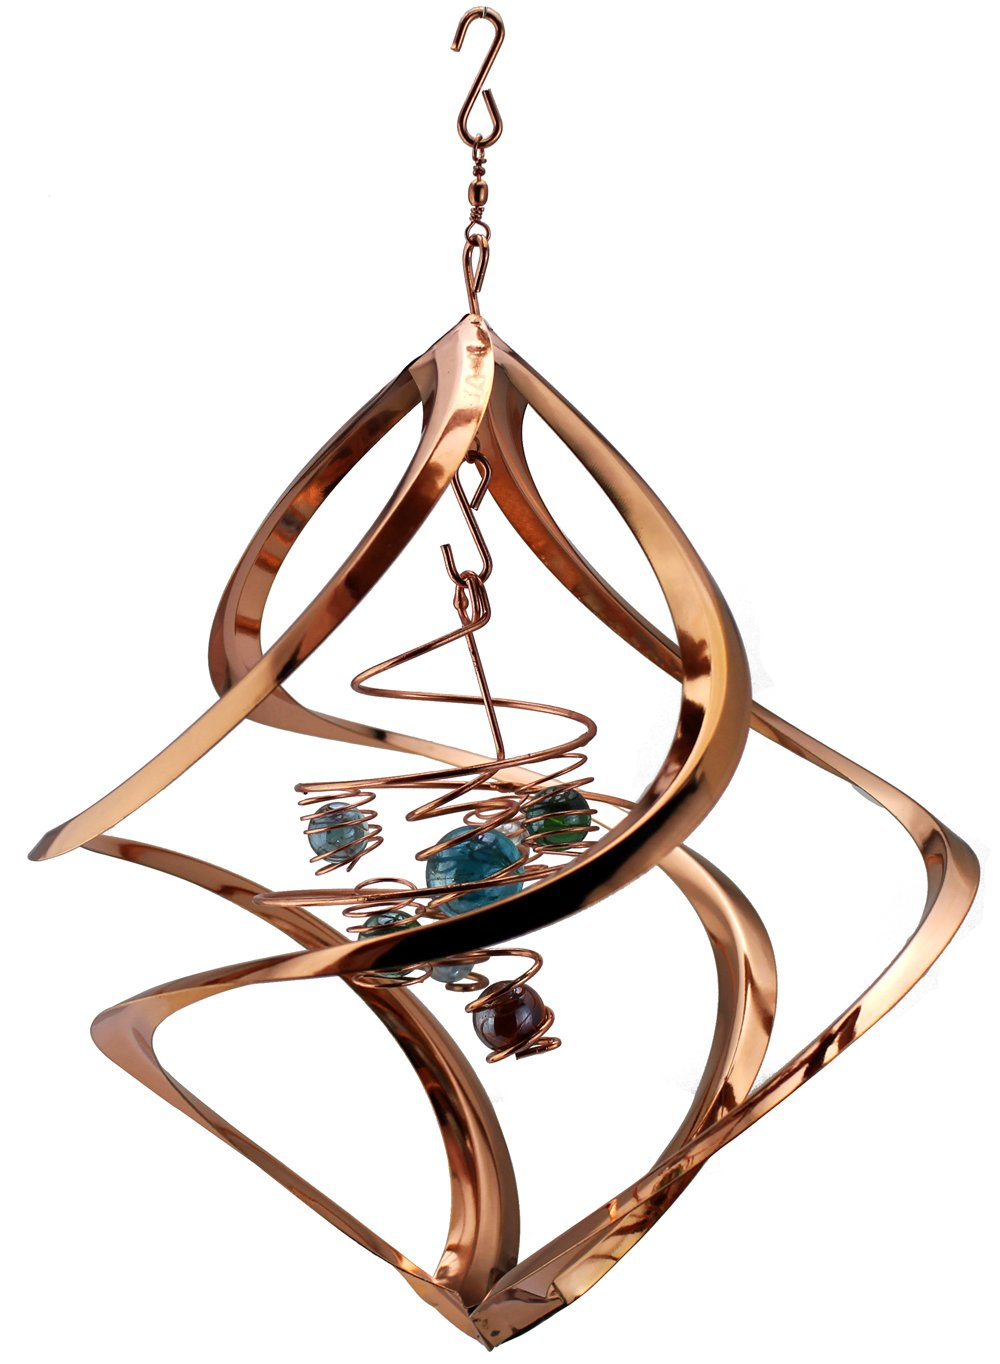 Garden Decor - Varies Options (Wind Spinner - Gold)